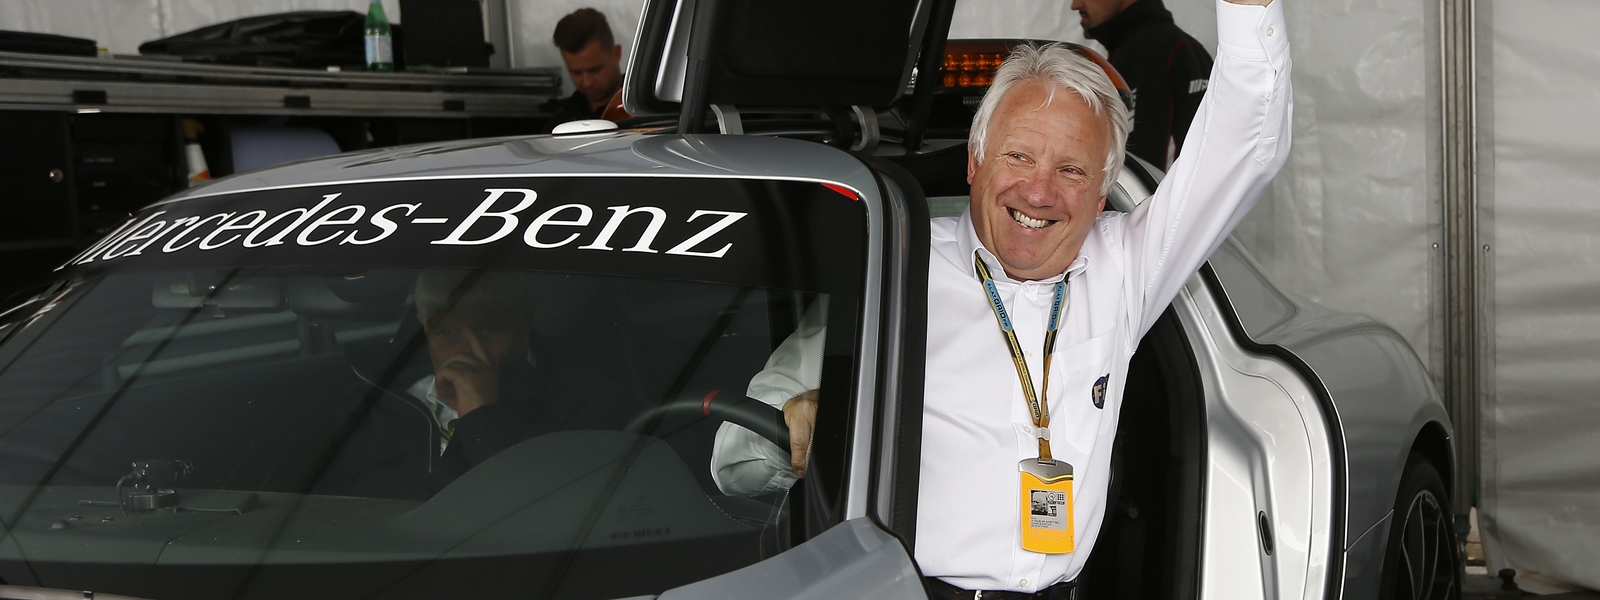 Motorsports: FIA Formula One World Championship 2014, Grand Prix of Canada,  Charlie Whiting (FIA) *** Local Caption *** +++ www.hoch-zwei.net +++ copyright: HOCH ZWEI +++